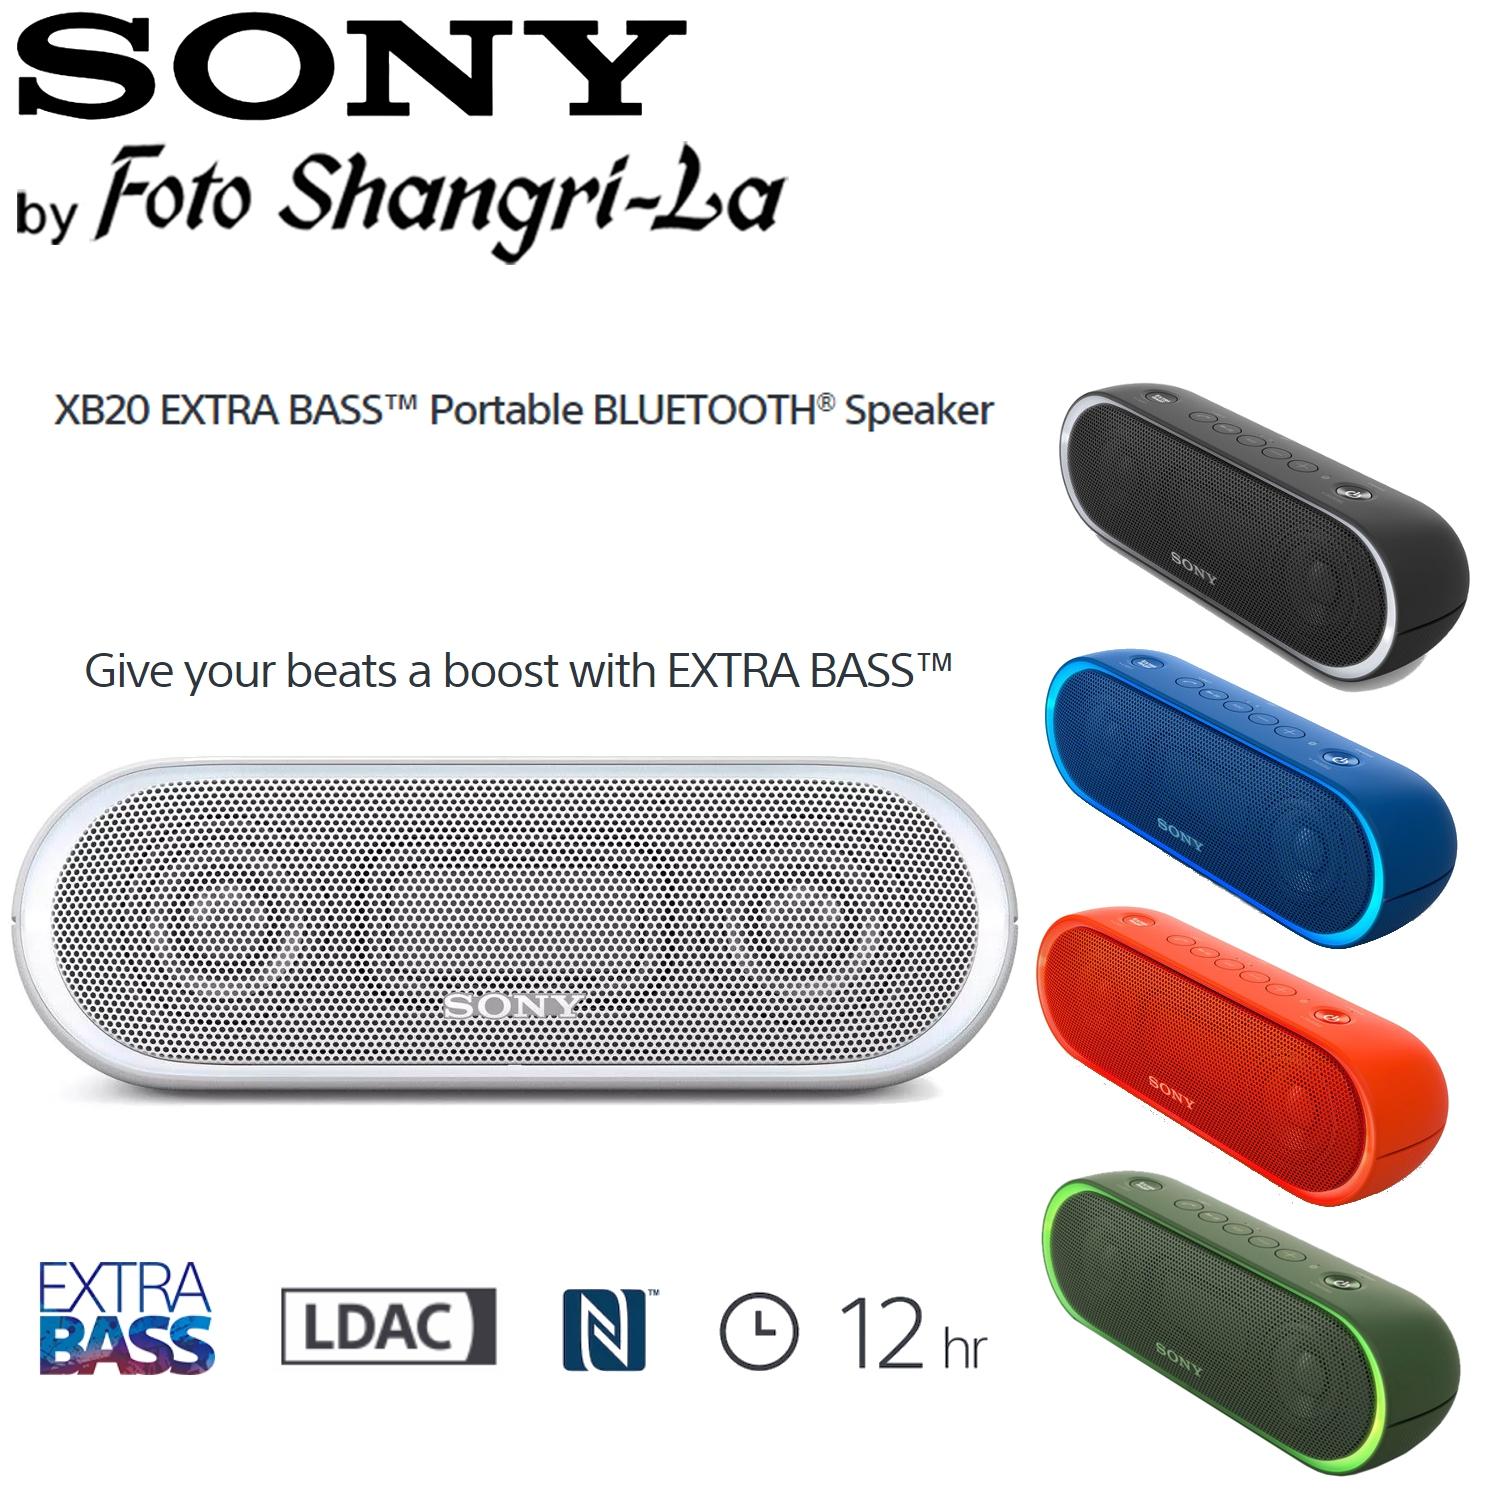 Sony SRS-XB20 Extra Bass Portable Wireless Bluetooth Speaker Clear Audio